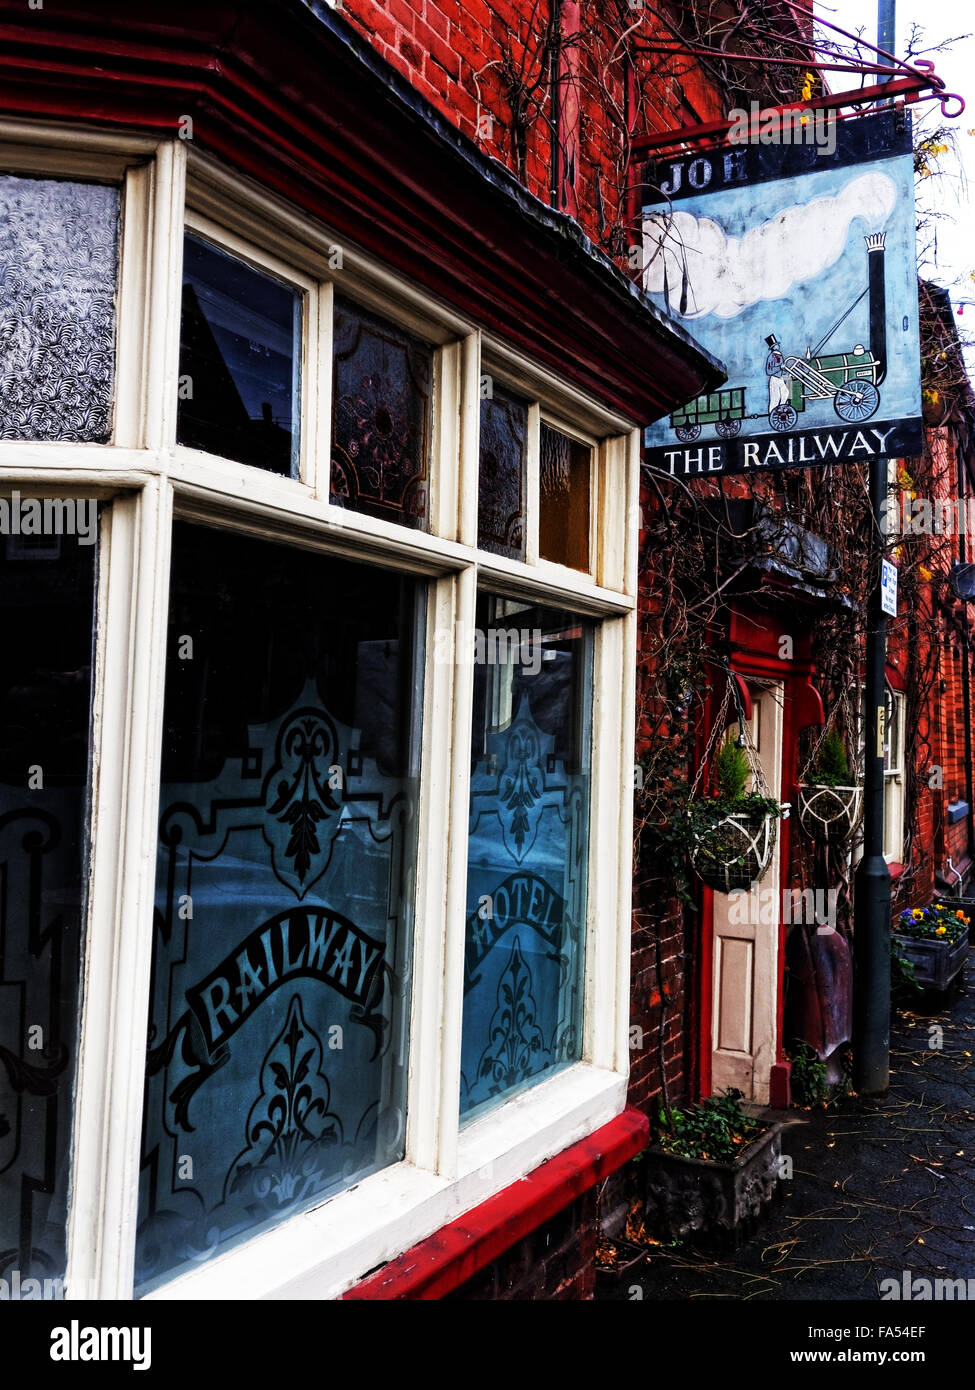 The Railway Inn at Bromyard is a town in Herefordshire, England - Stock Image